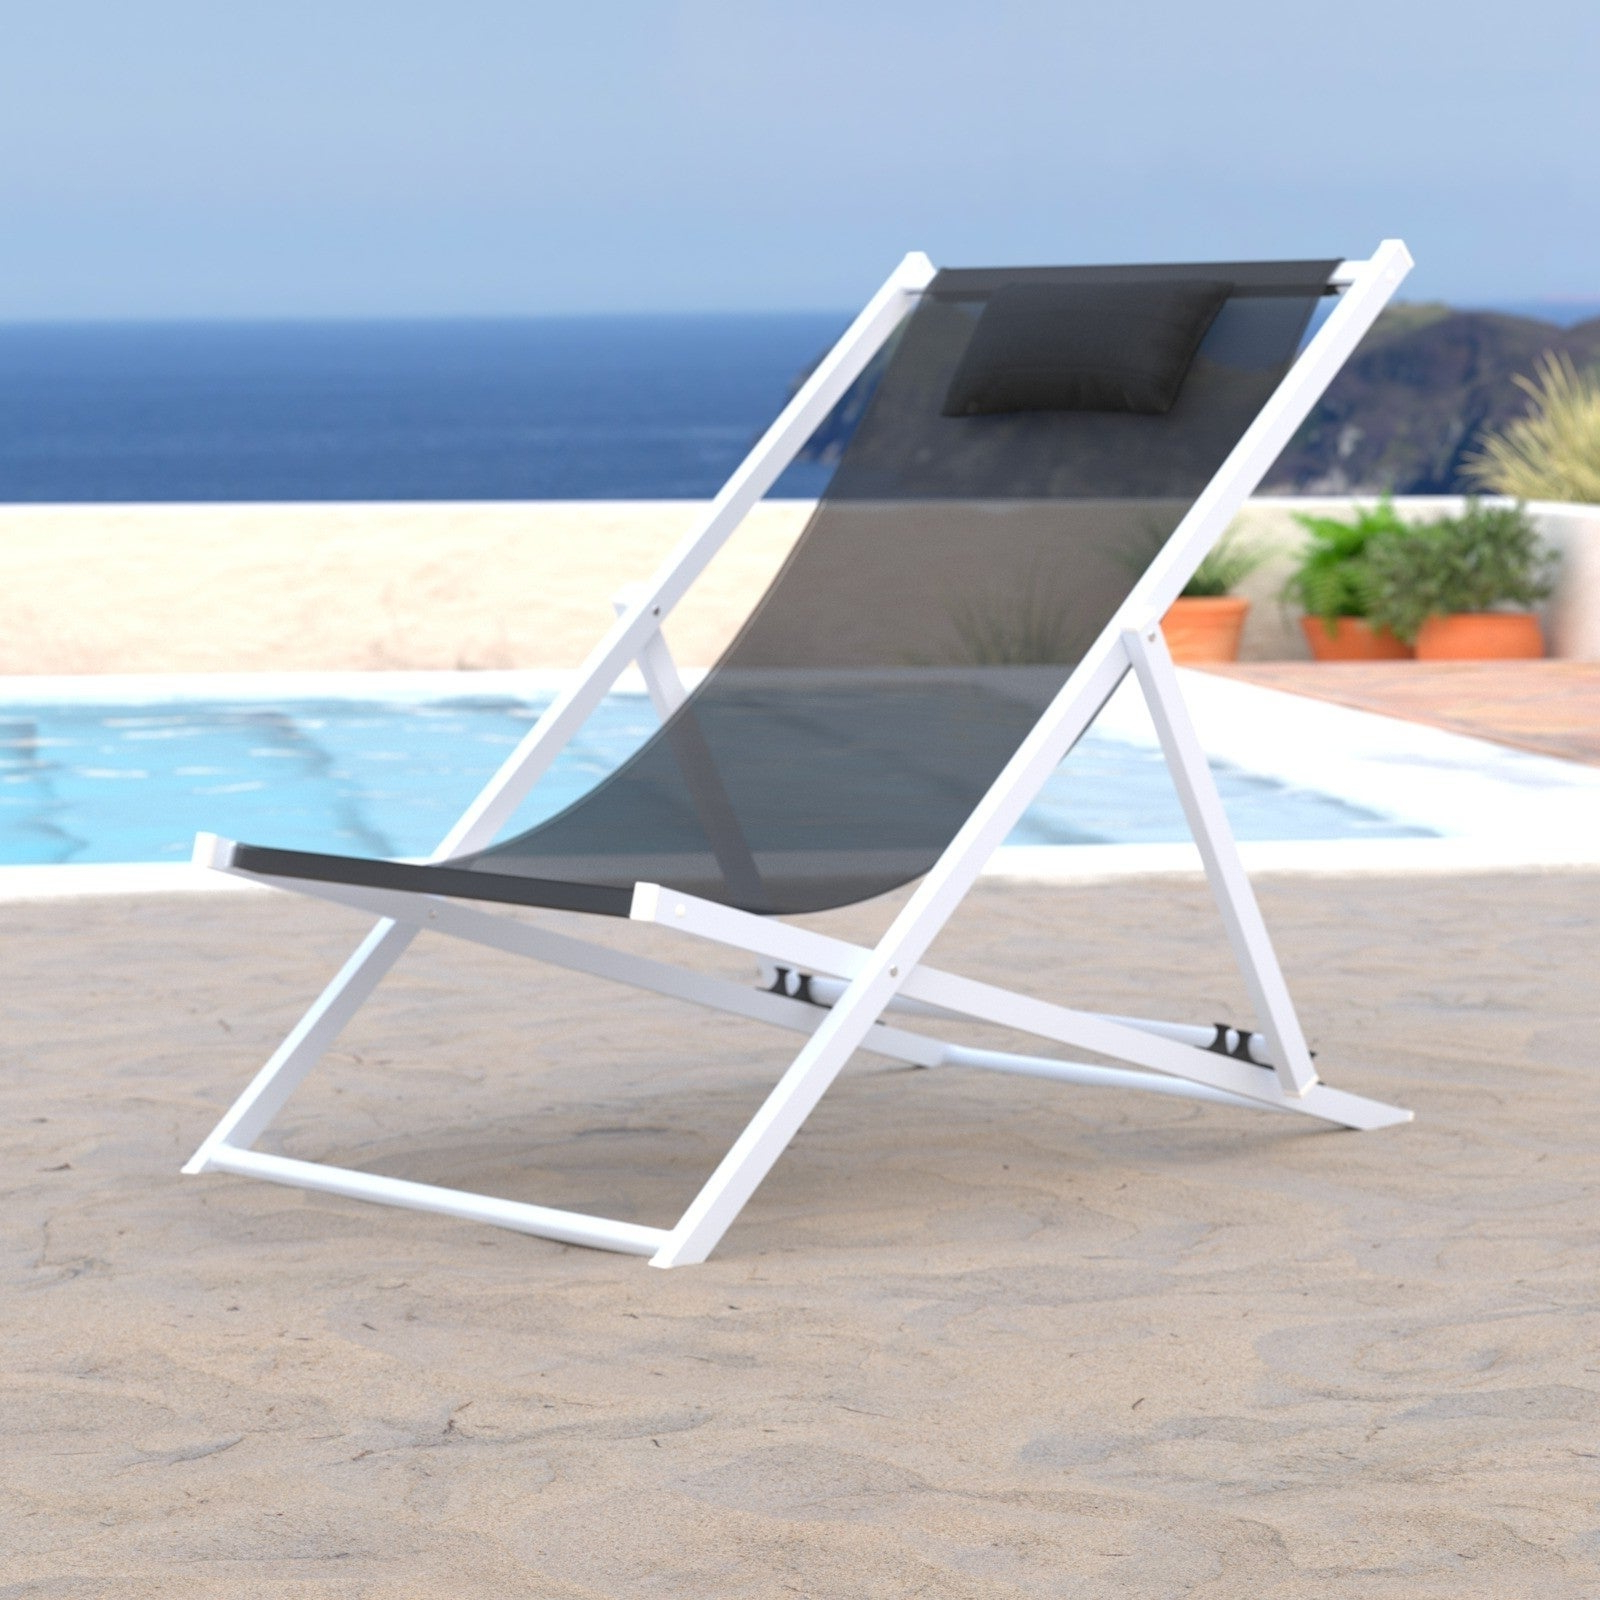 Leisuremod Sunset Patio Sling Folding Chair Adjustable With Headrest Intended For Newest Sunset Patio Sling Folding Chairs With Headrest (Gallery 1 of 25)